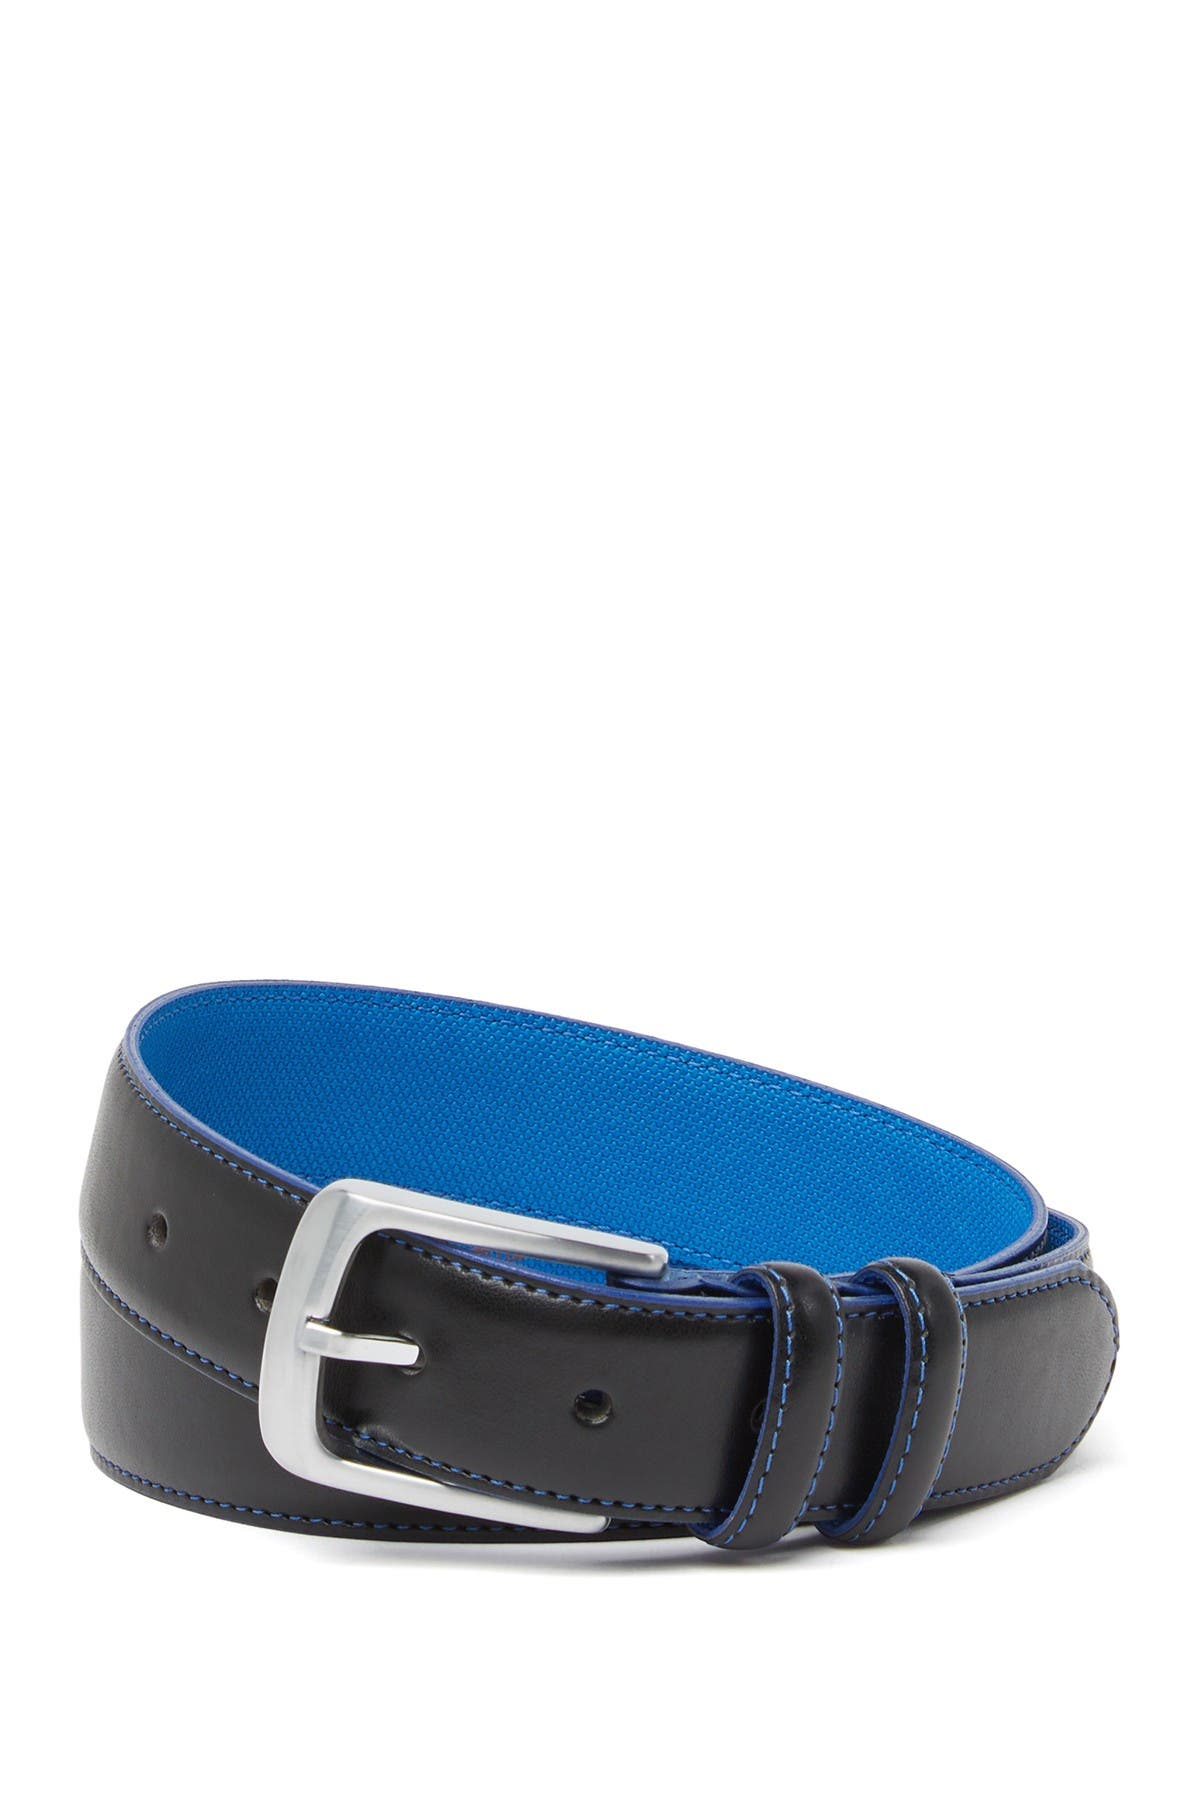 Image of Vince Camuto Blue Lined Leather Belt